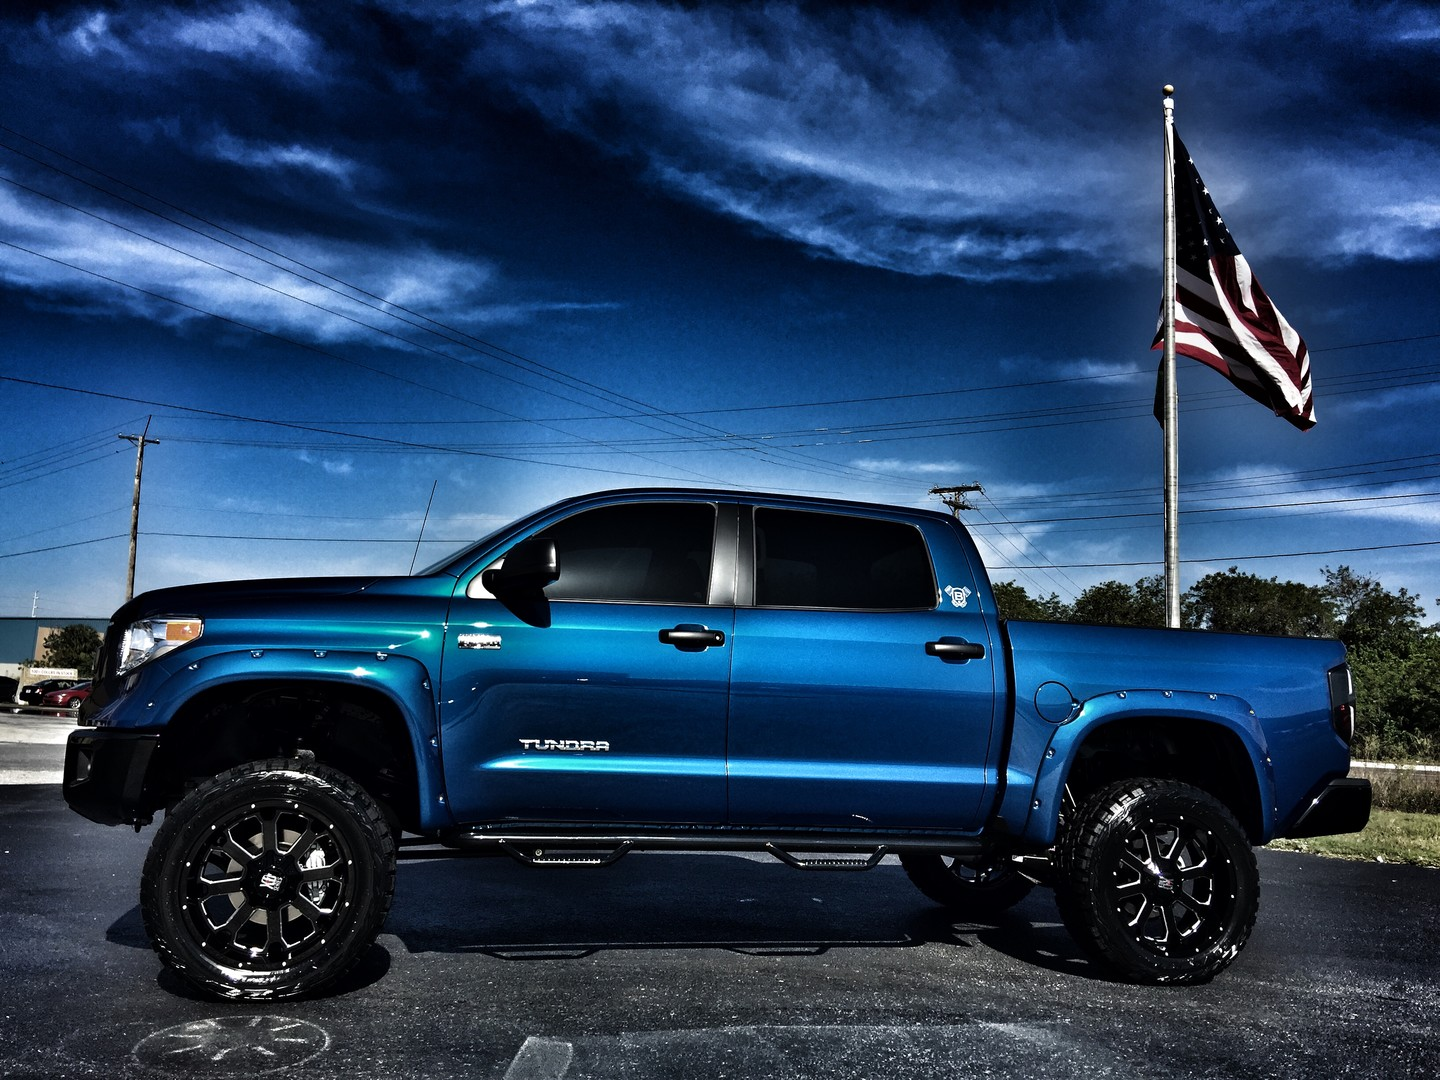 Toyota Of Tampa Bay >> 2017 Toyota Tundra CUSTOM LIFTED LEATHER CREWMAX 4X4 Florida Bayshore Automotive